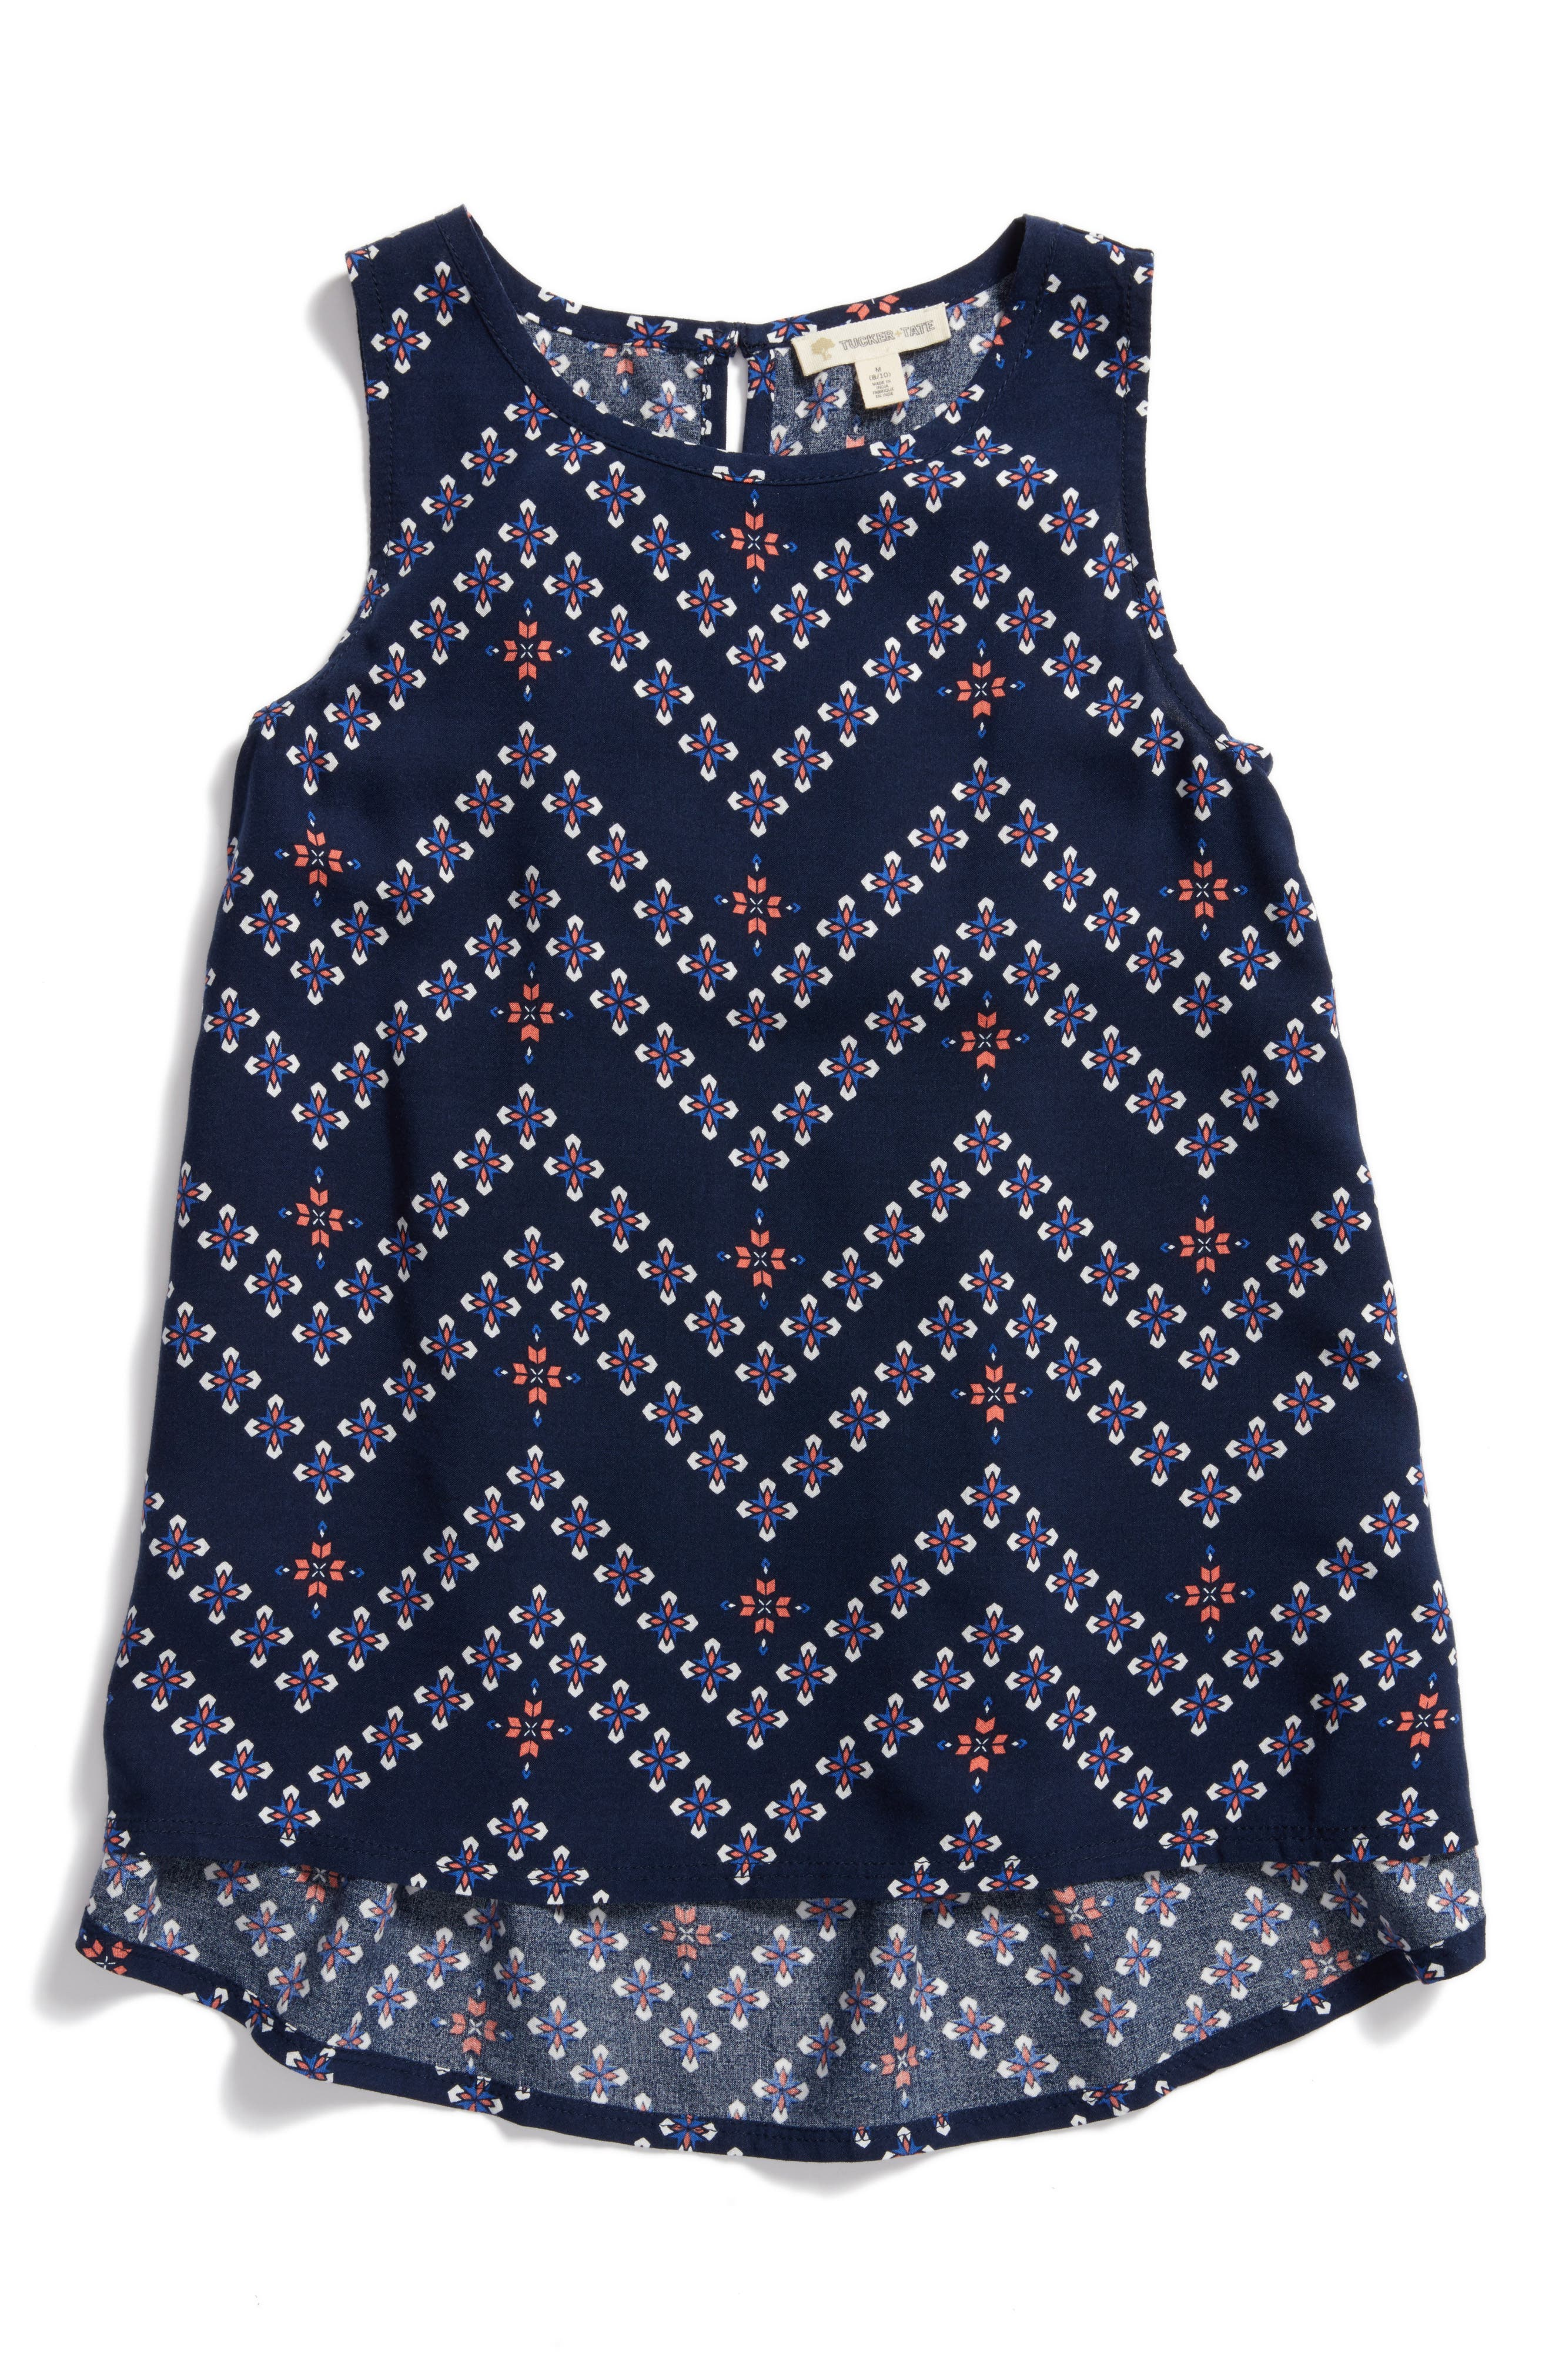 Alternate Image 1 Selected - Tucker + Tate Print Sleeveless Tunic (Big Girls)